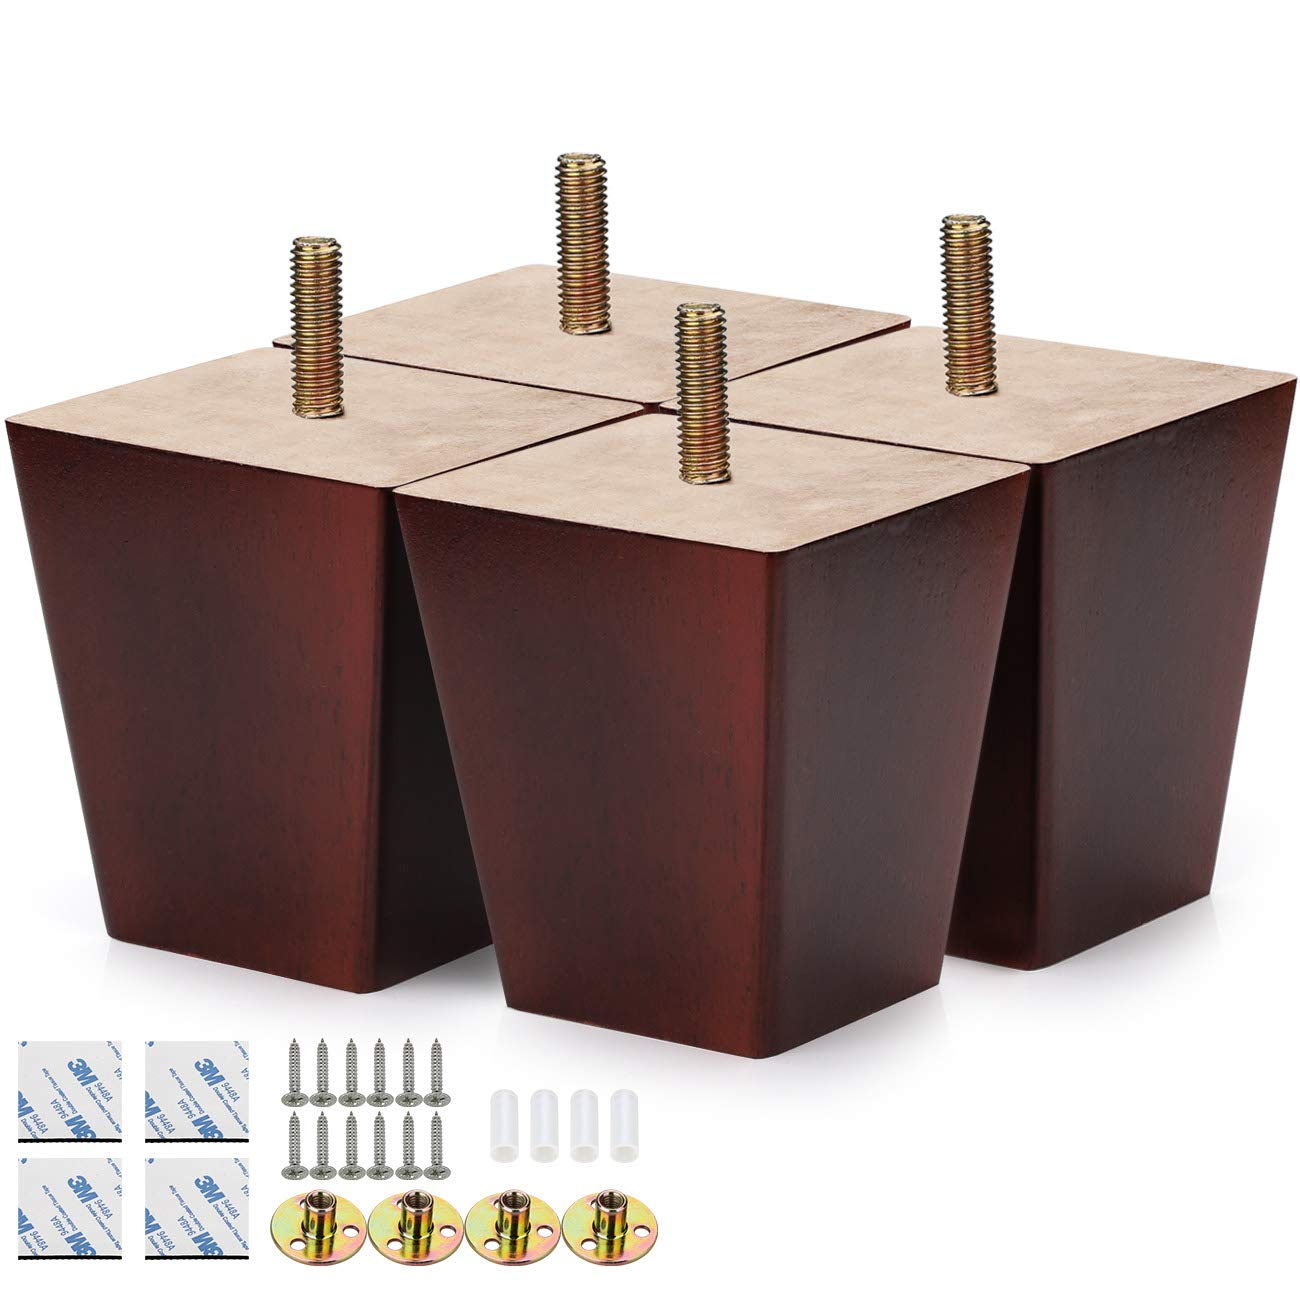 "Alasdo Set of 4 Furniture Legs, 3"" Square Rubber Wood Legs for Furniture Tapered Coffee Finished Wood Legs for Sofa, Chair, Ottoman, Stool"